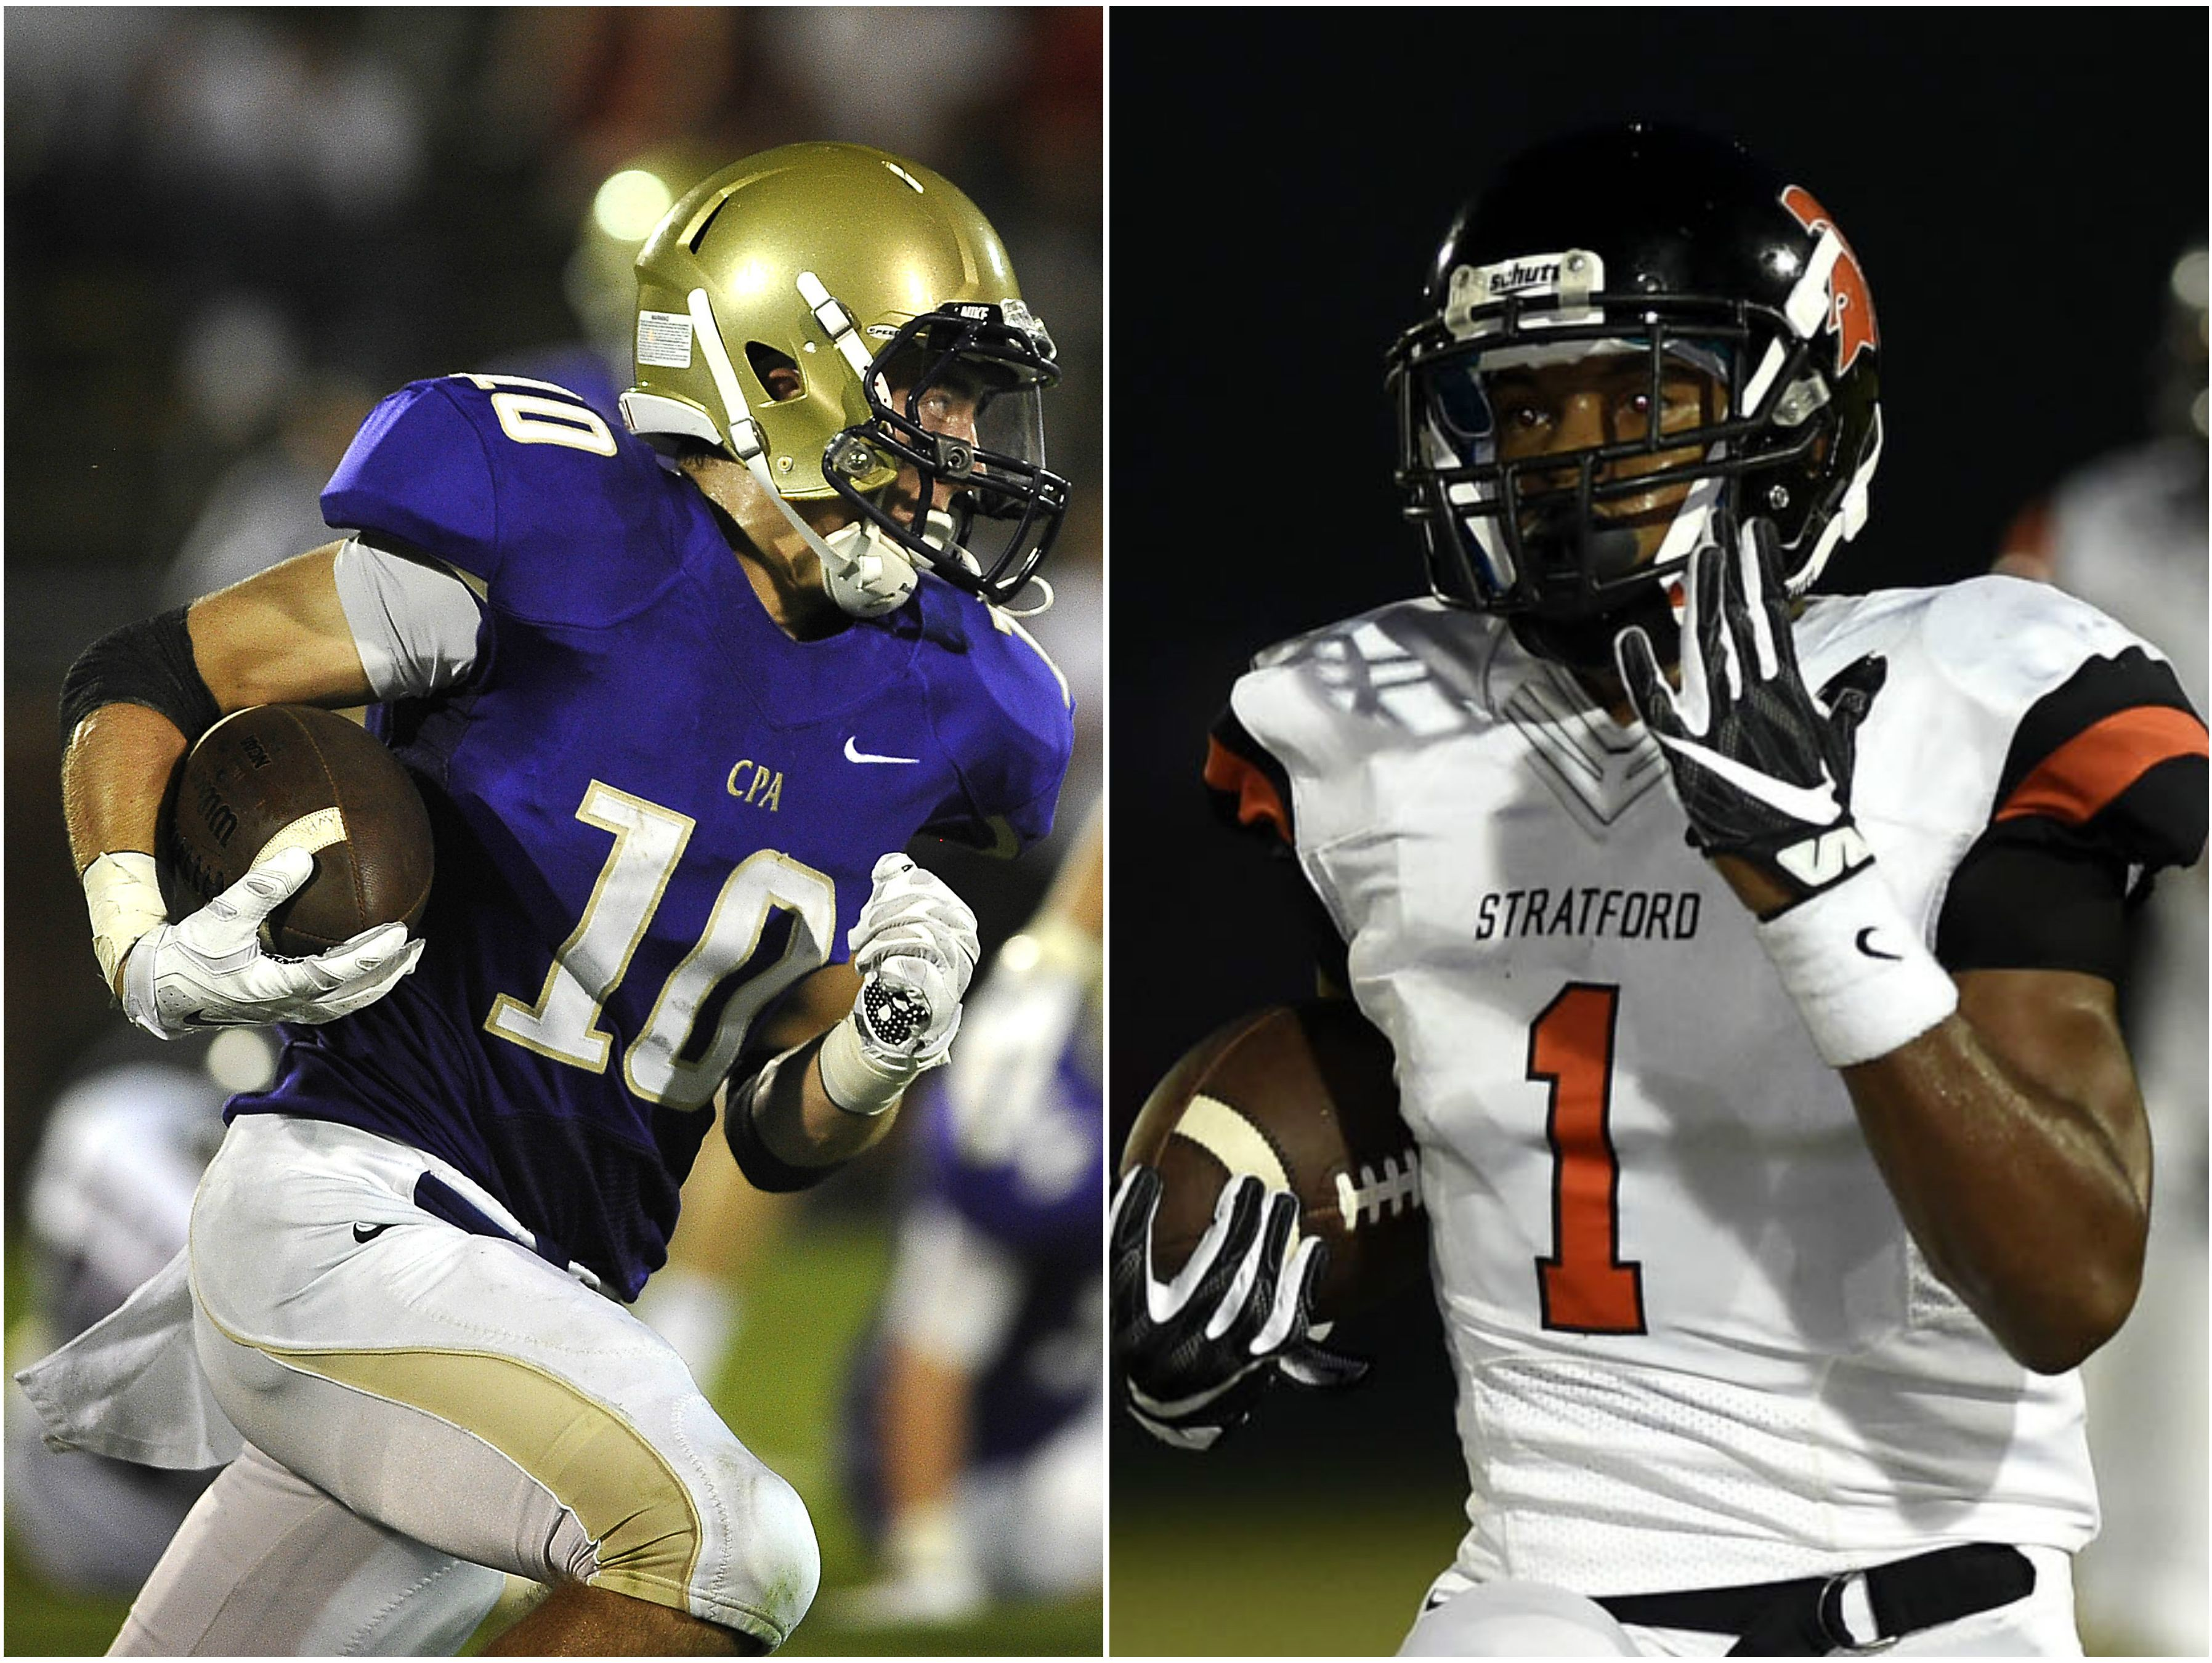 CPA receiver Andrew Howard (left) and Stratford running back T.J. Carter (right)